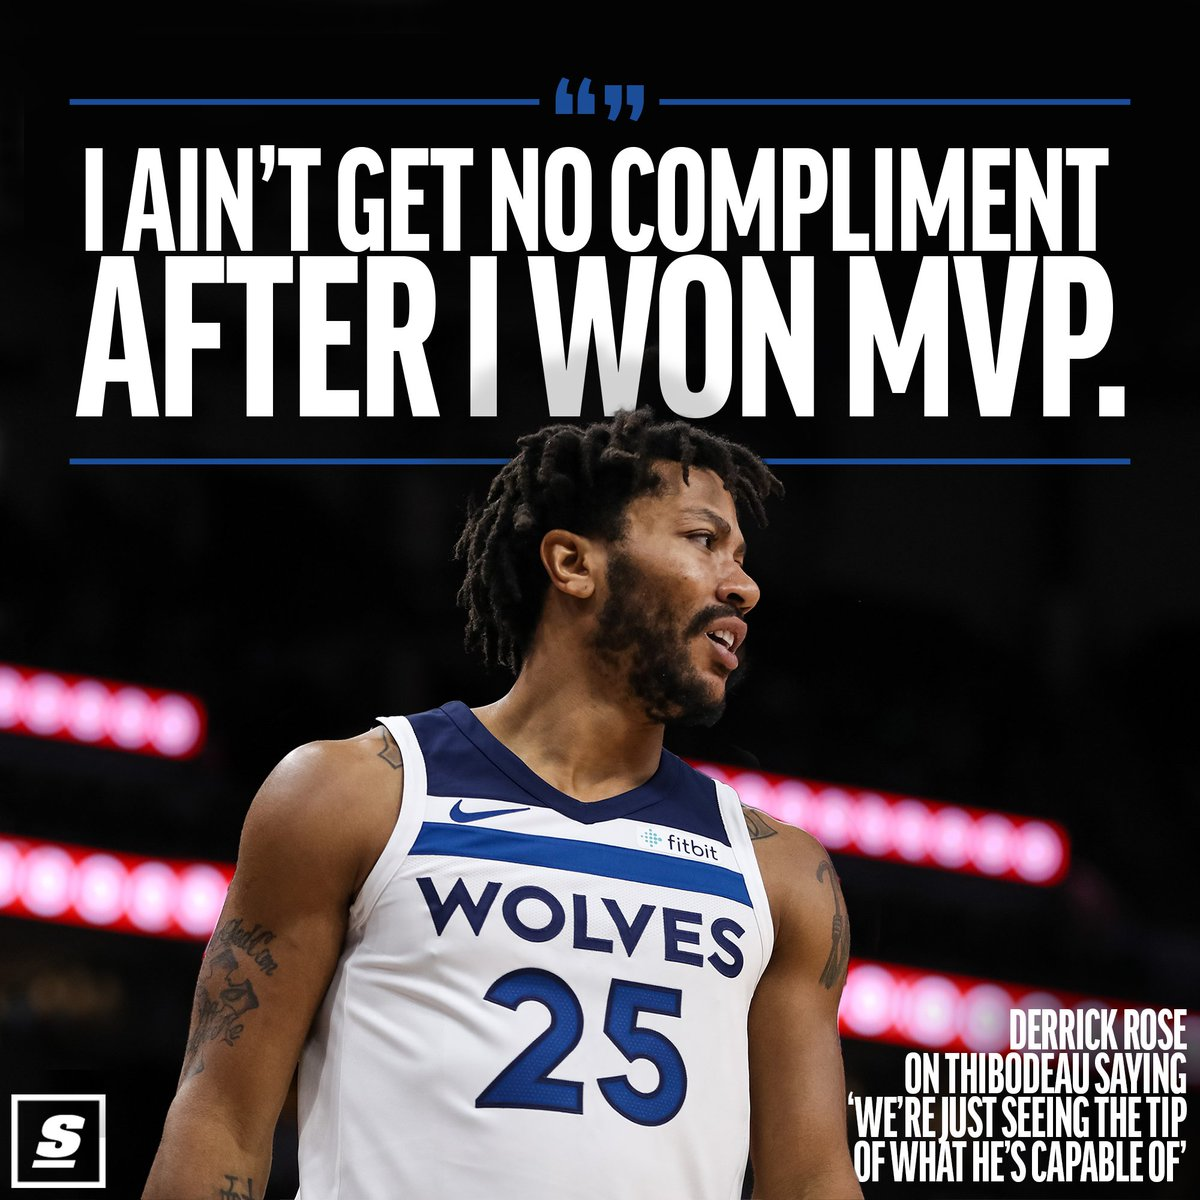 derrick rose Derrick rose, the one-time nba mvp whose career has been marked by horrific injuries and comebacks, is rebooting his career again and, at this point, he has heard all the talk and read all the headlines questioning him he's having none of it, telling reporters after he joined the minnesota.